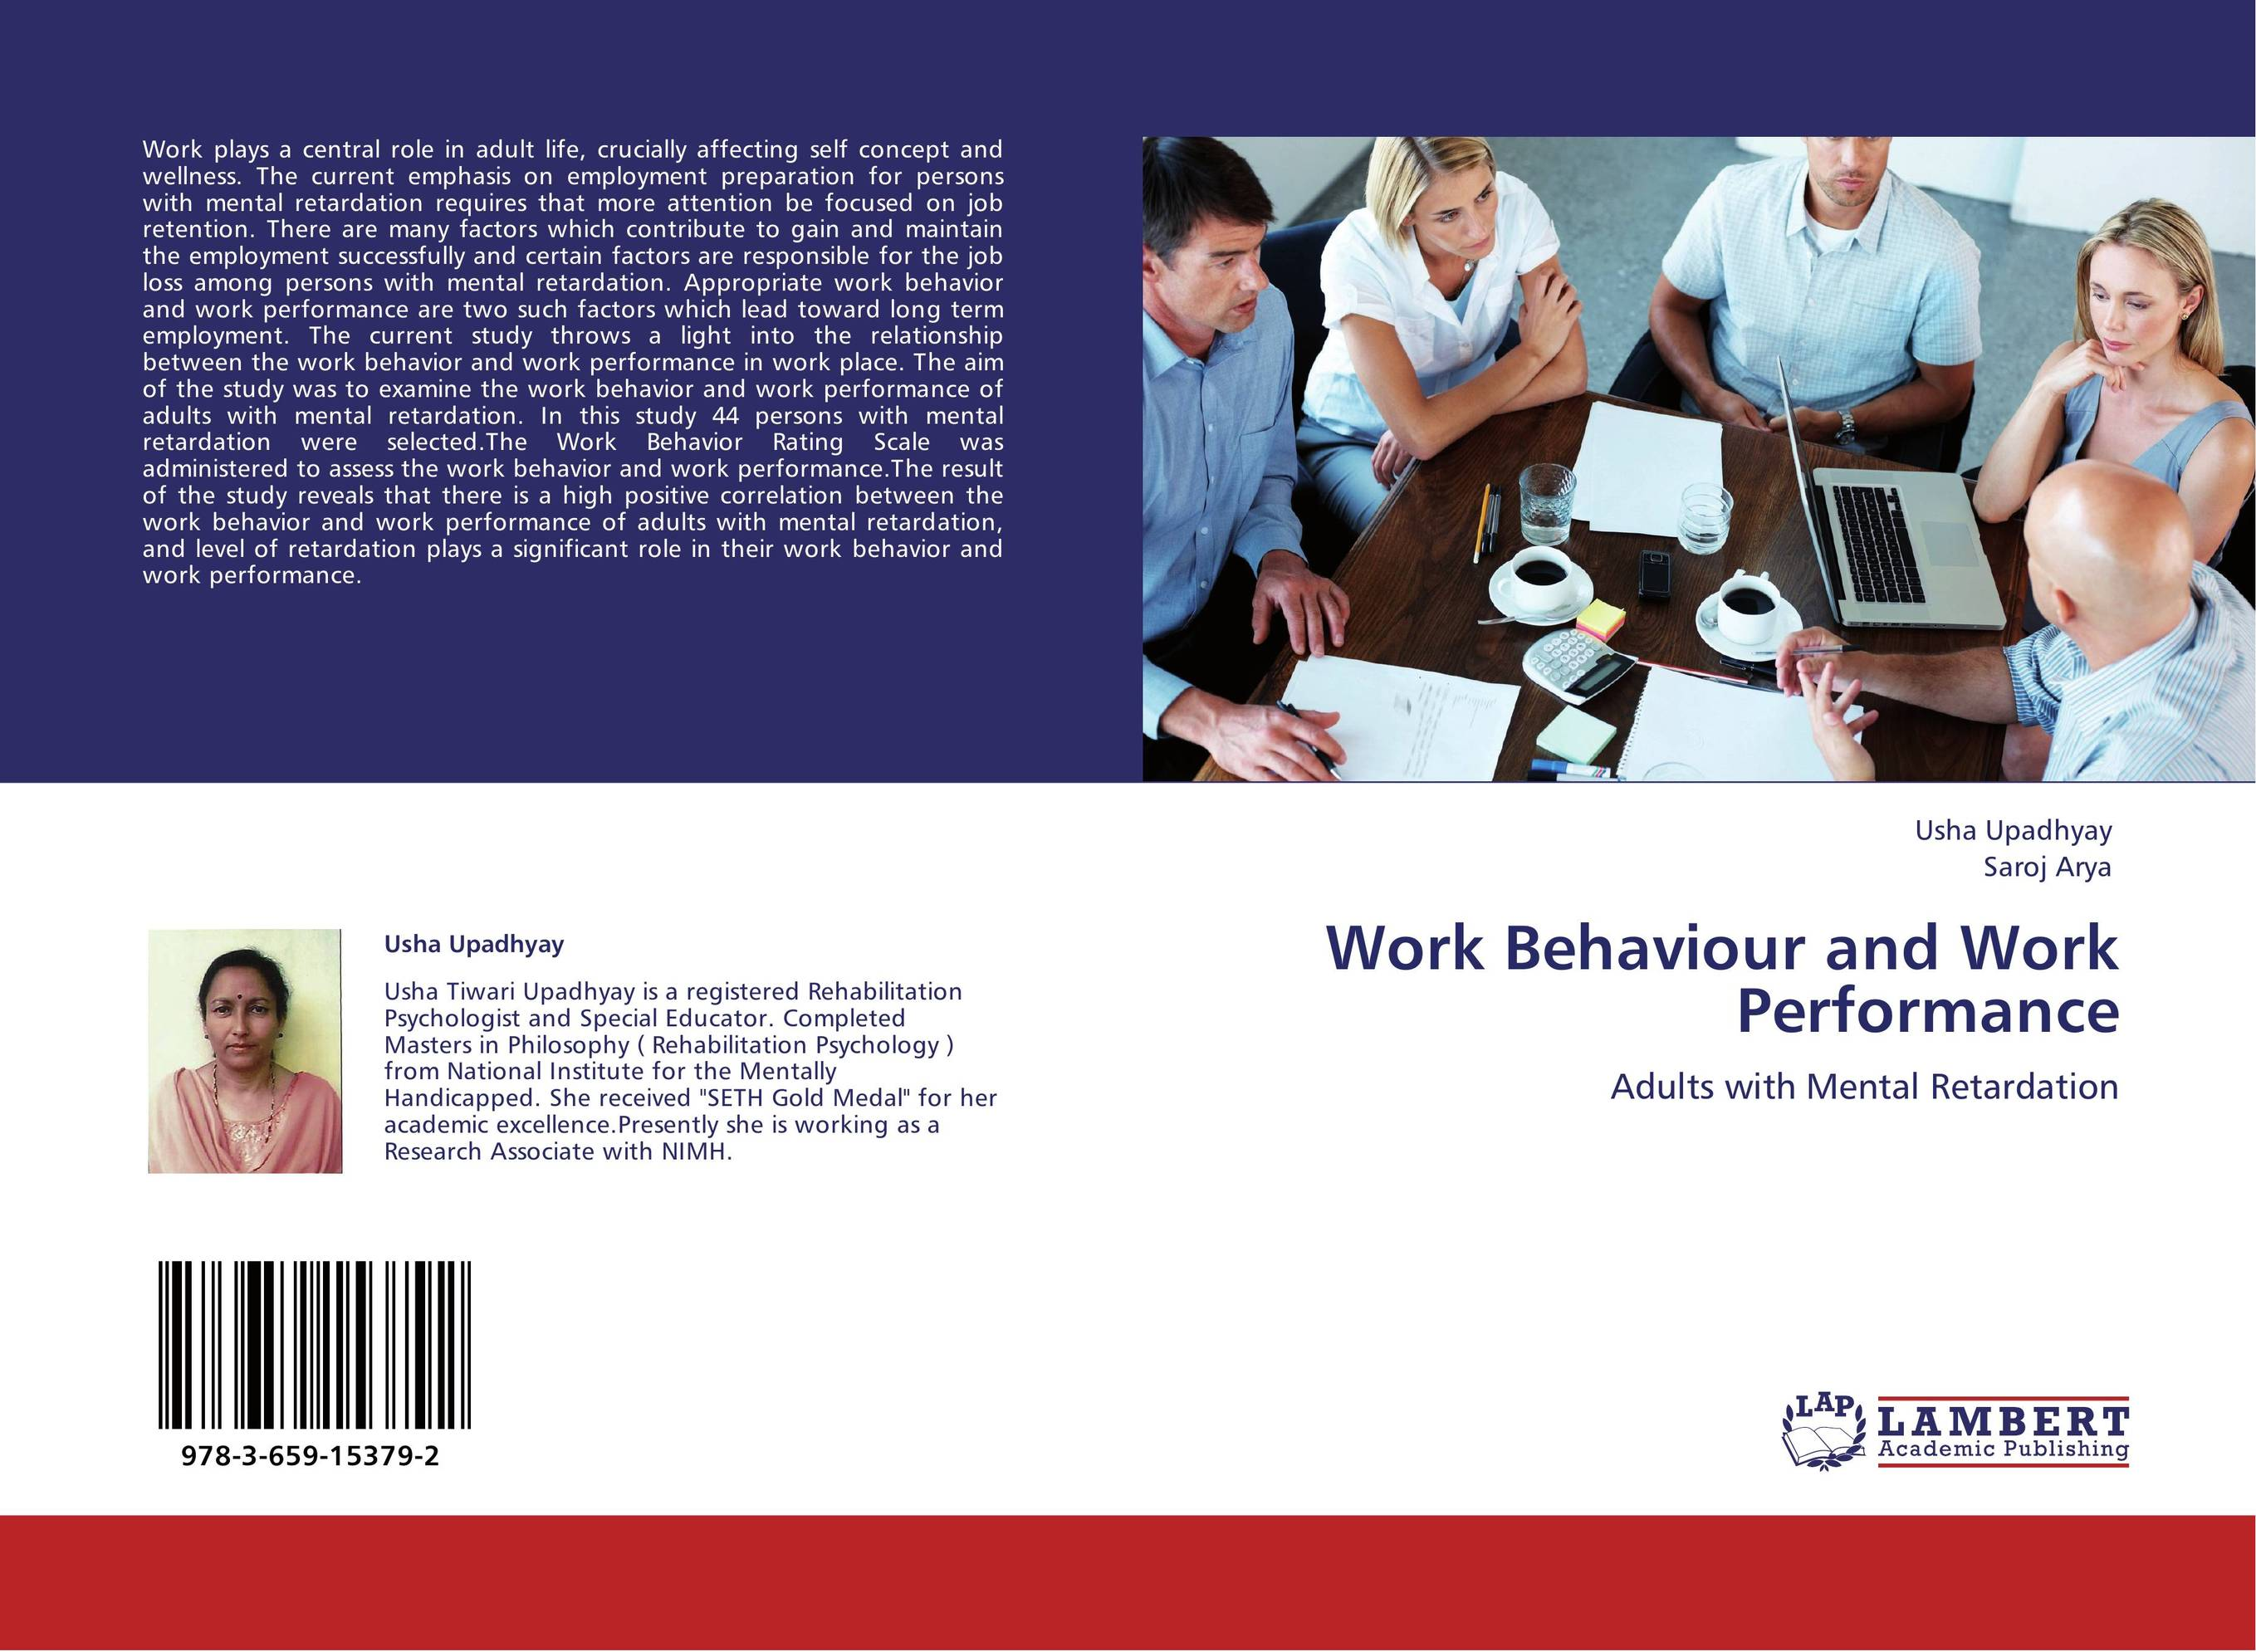 human factors and work performance While the phrase human factors often is used to describe the interaction of individuals with each other, with equipment and facilities and with management systems, it also is used to describe how such interactions are influenced by a work environment and culture.